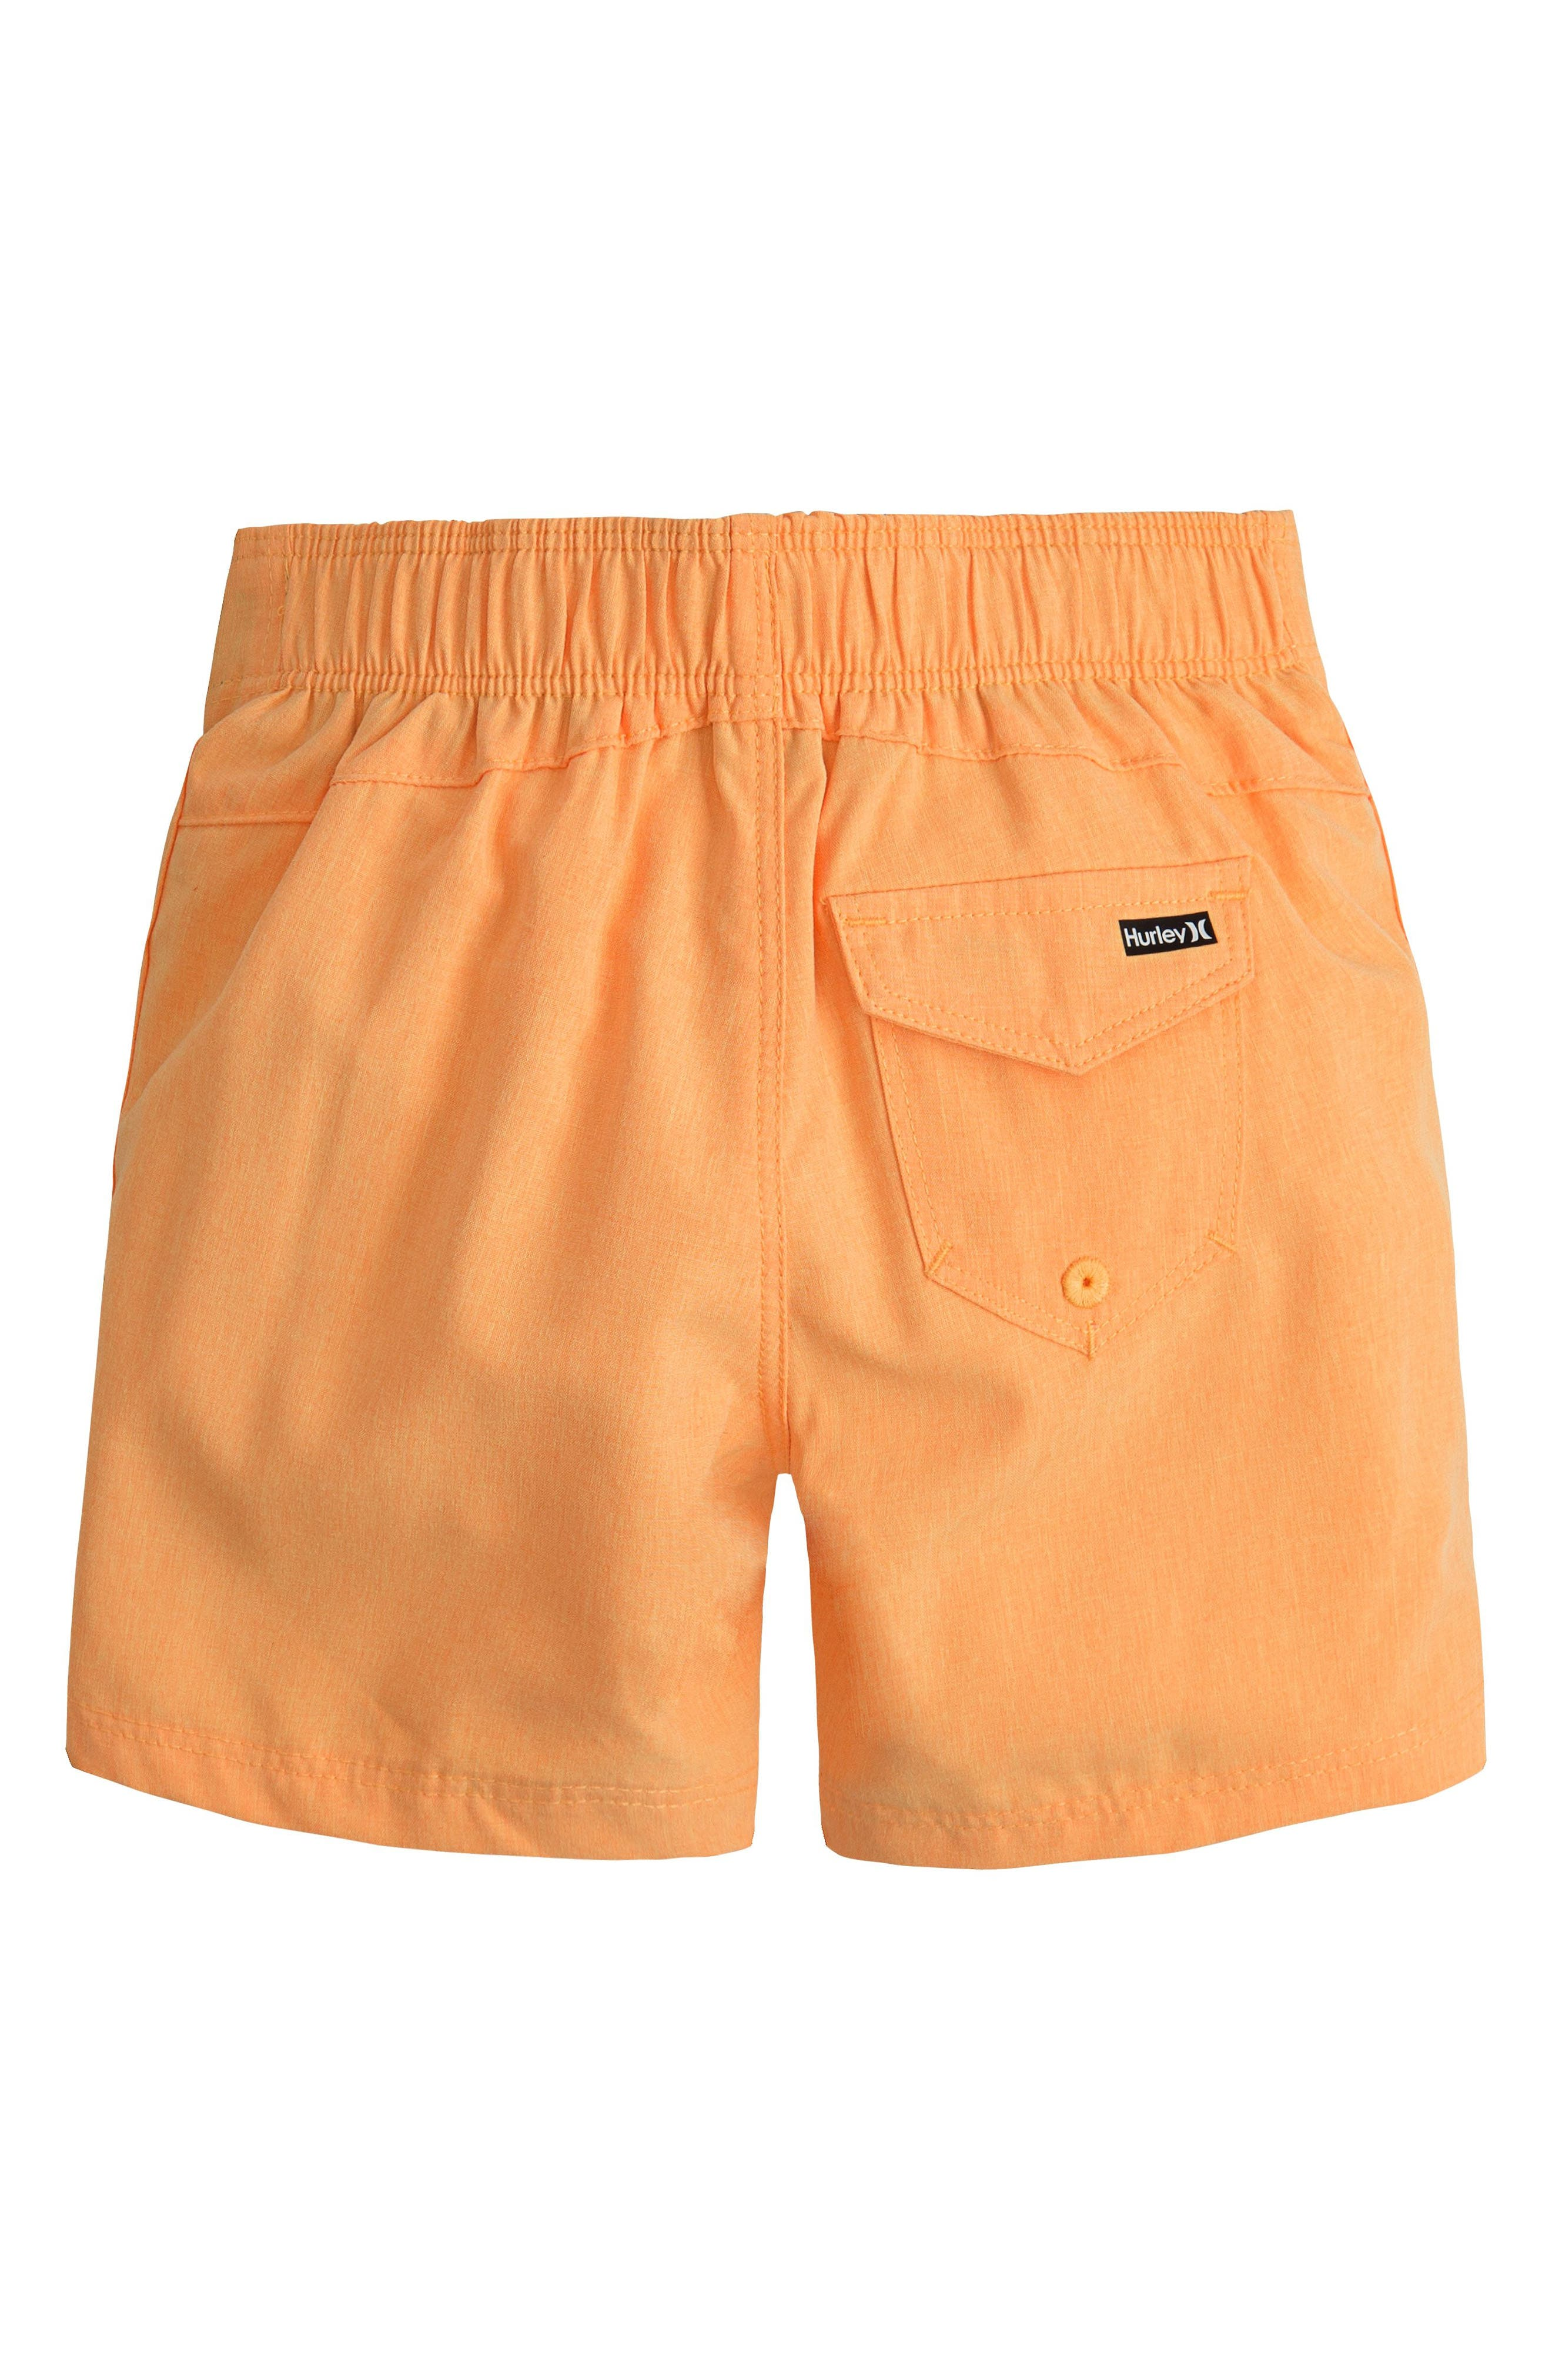 Heathered One & Only Board Shorts,                             Alternate thumbnail 2, color,                             Laser Orange Heather